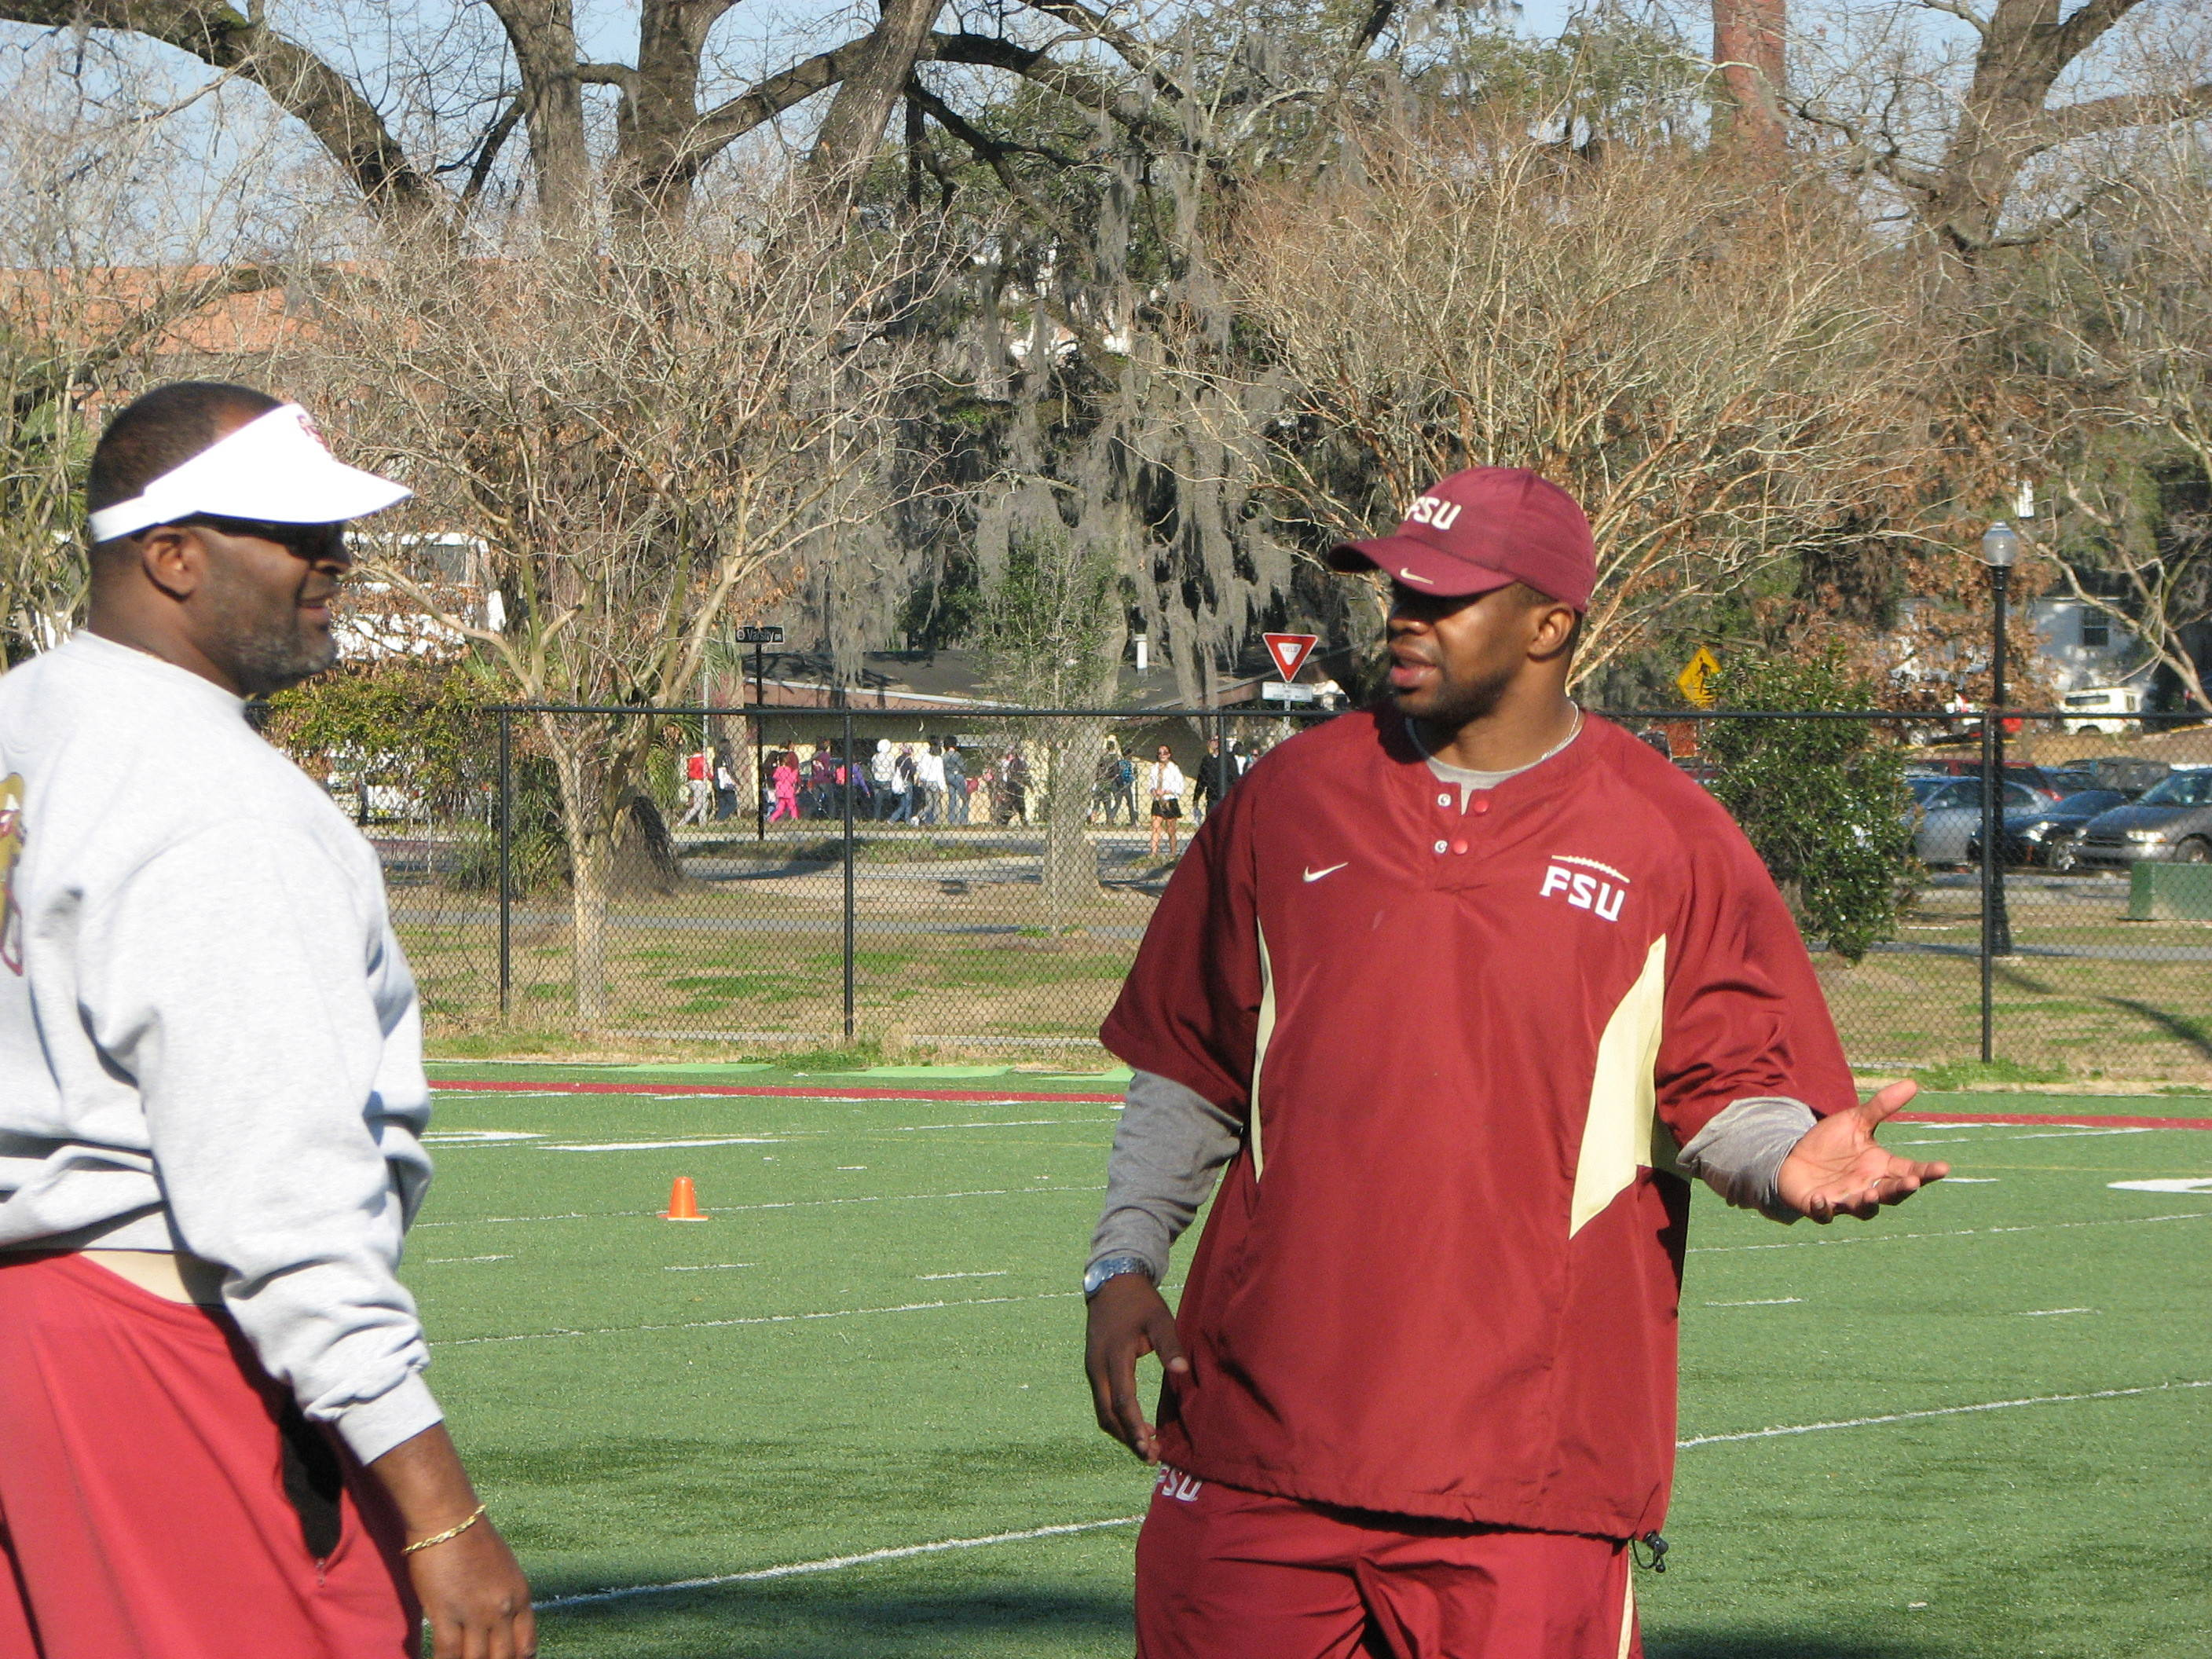 Odell Haggins and Dameyune Craig